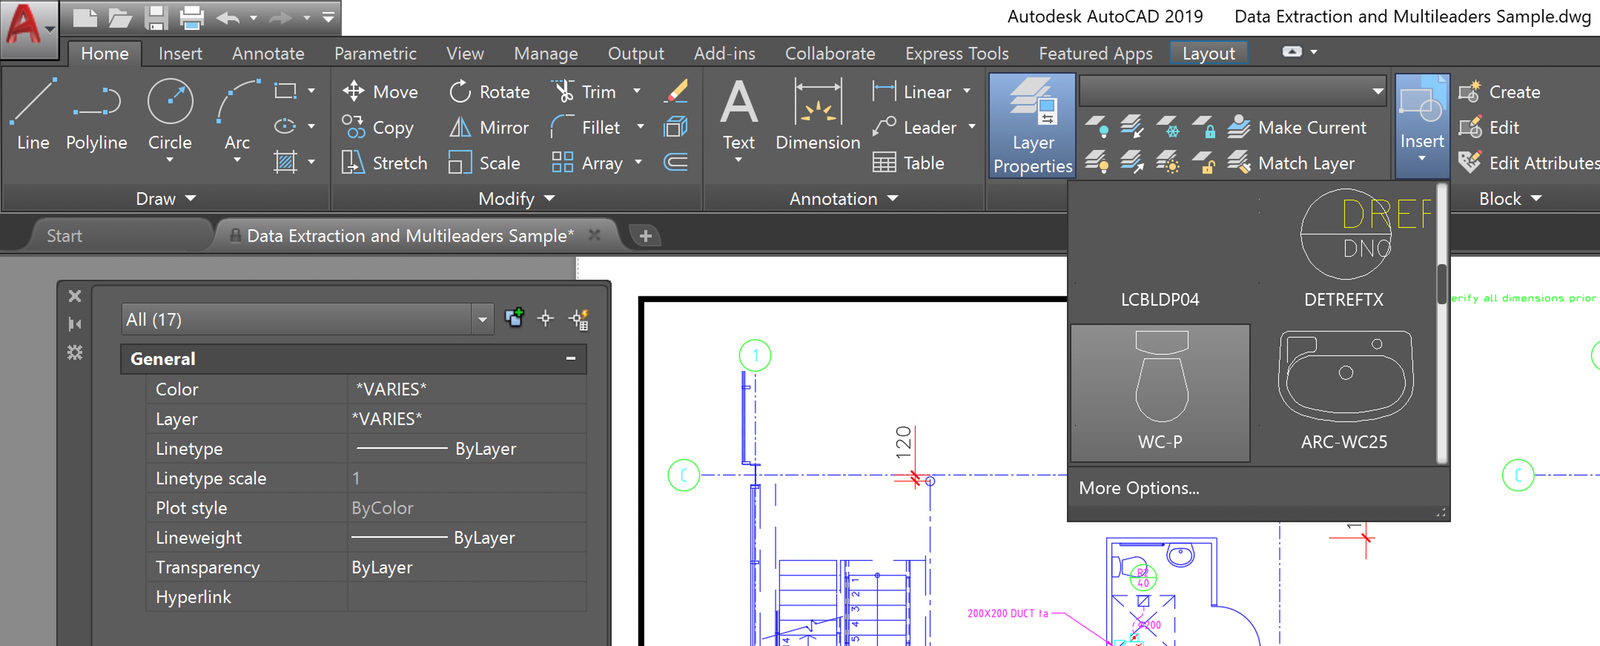 Cant Miss Video Whats New in AutoCAD 2019  AutoCAD